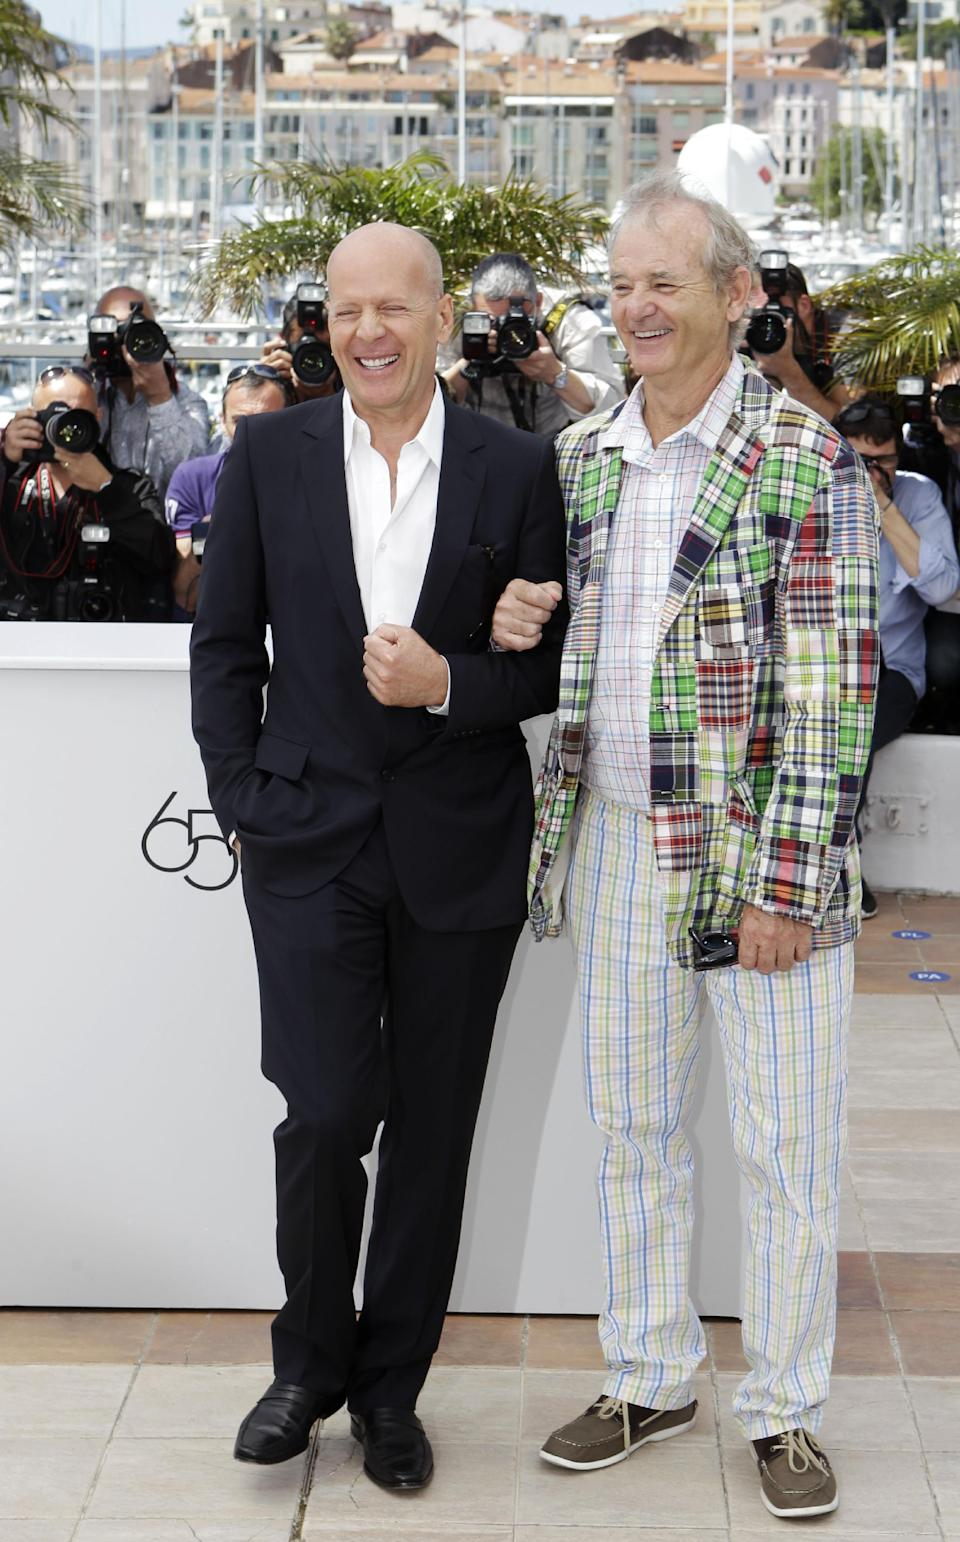 Actors Bruce Willis, left and Bill Murray pose during a photo call for Moonrise Kingdom at the 65th international film festival, in Cannes, southern France, Wednesday, May 16, 2012. (AP Photo/Lionel Cironneau)